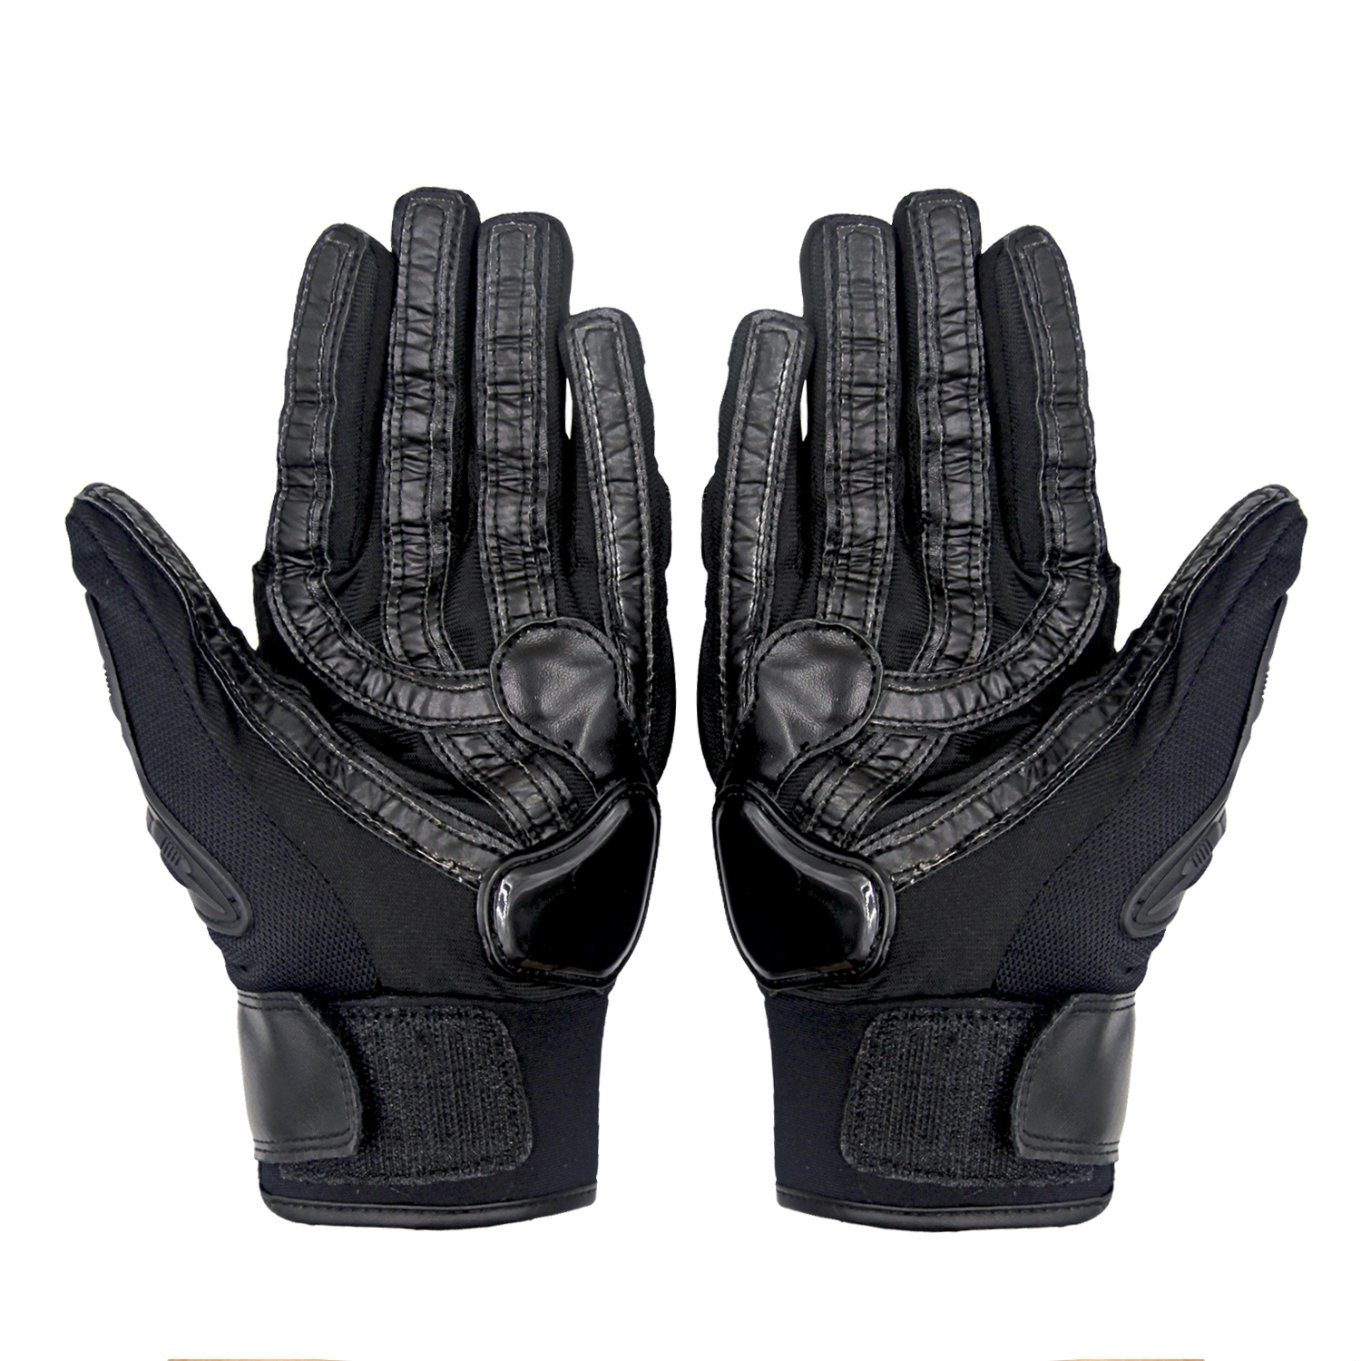 Police Security Tactical Gloves with Leather Material